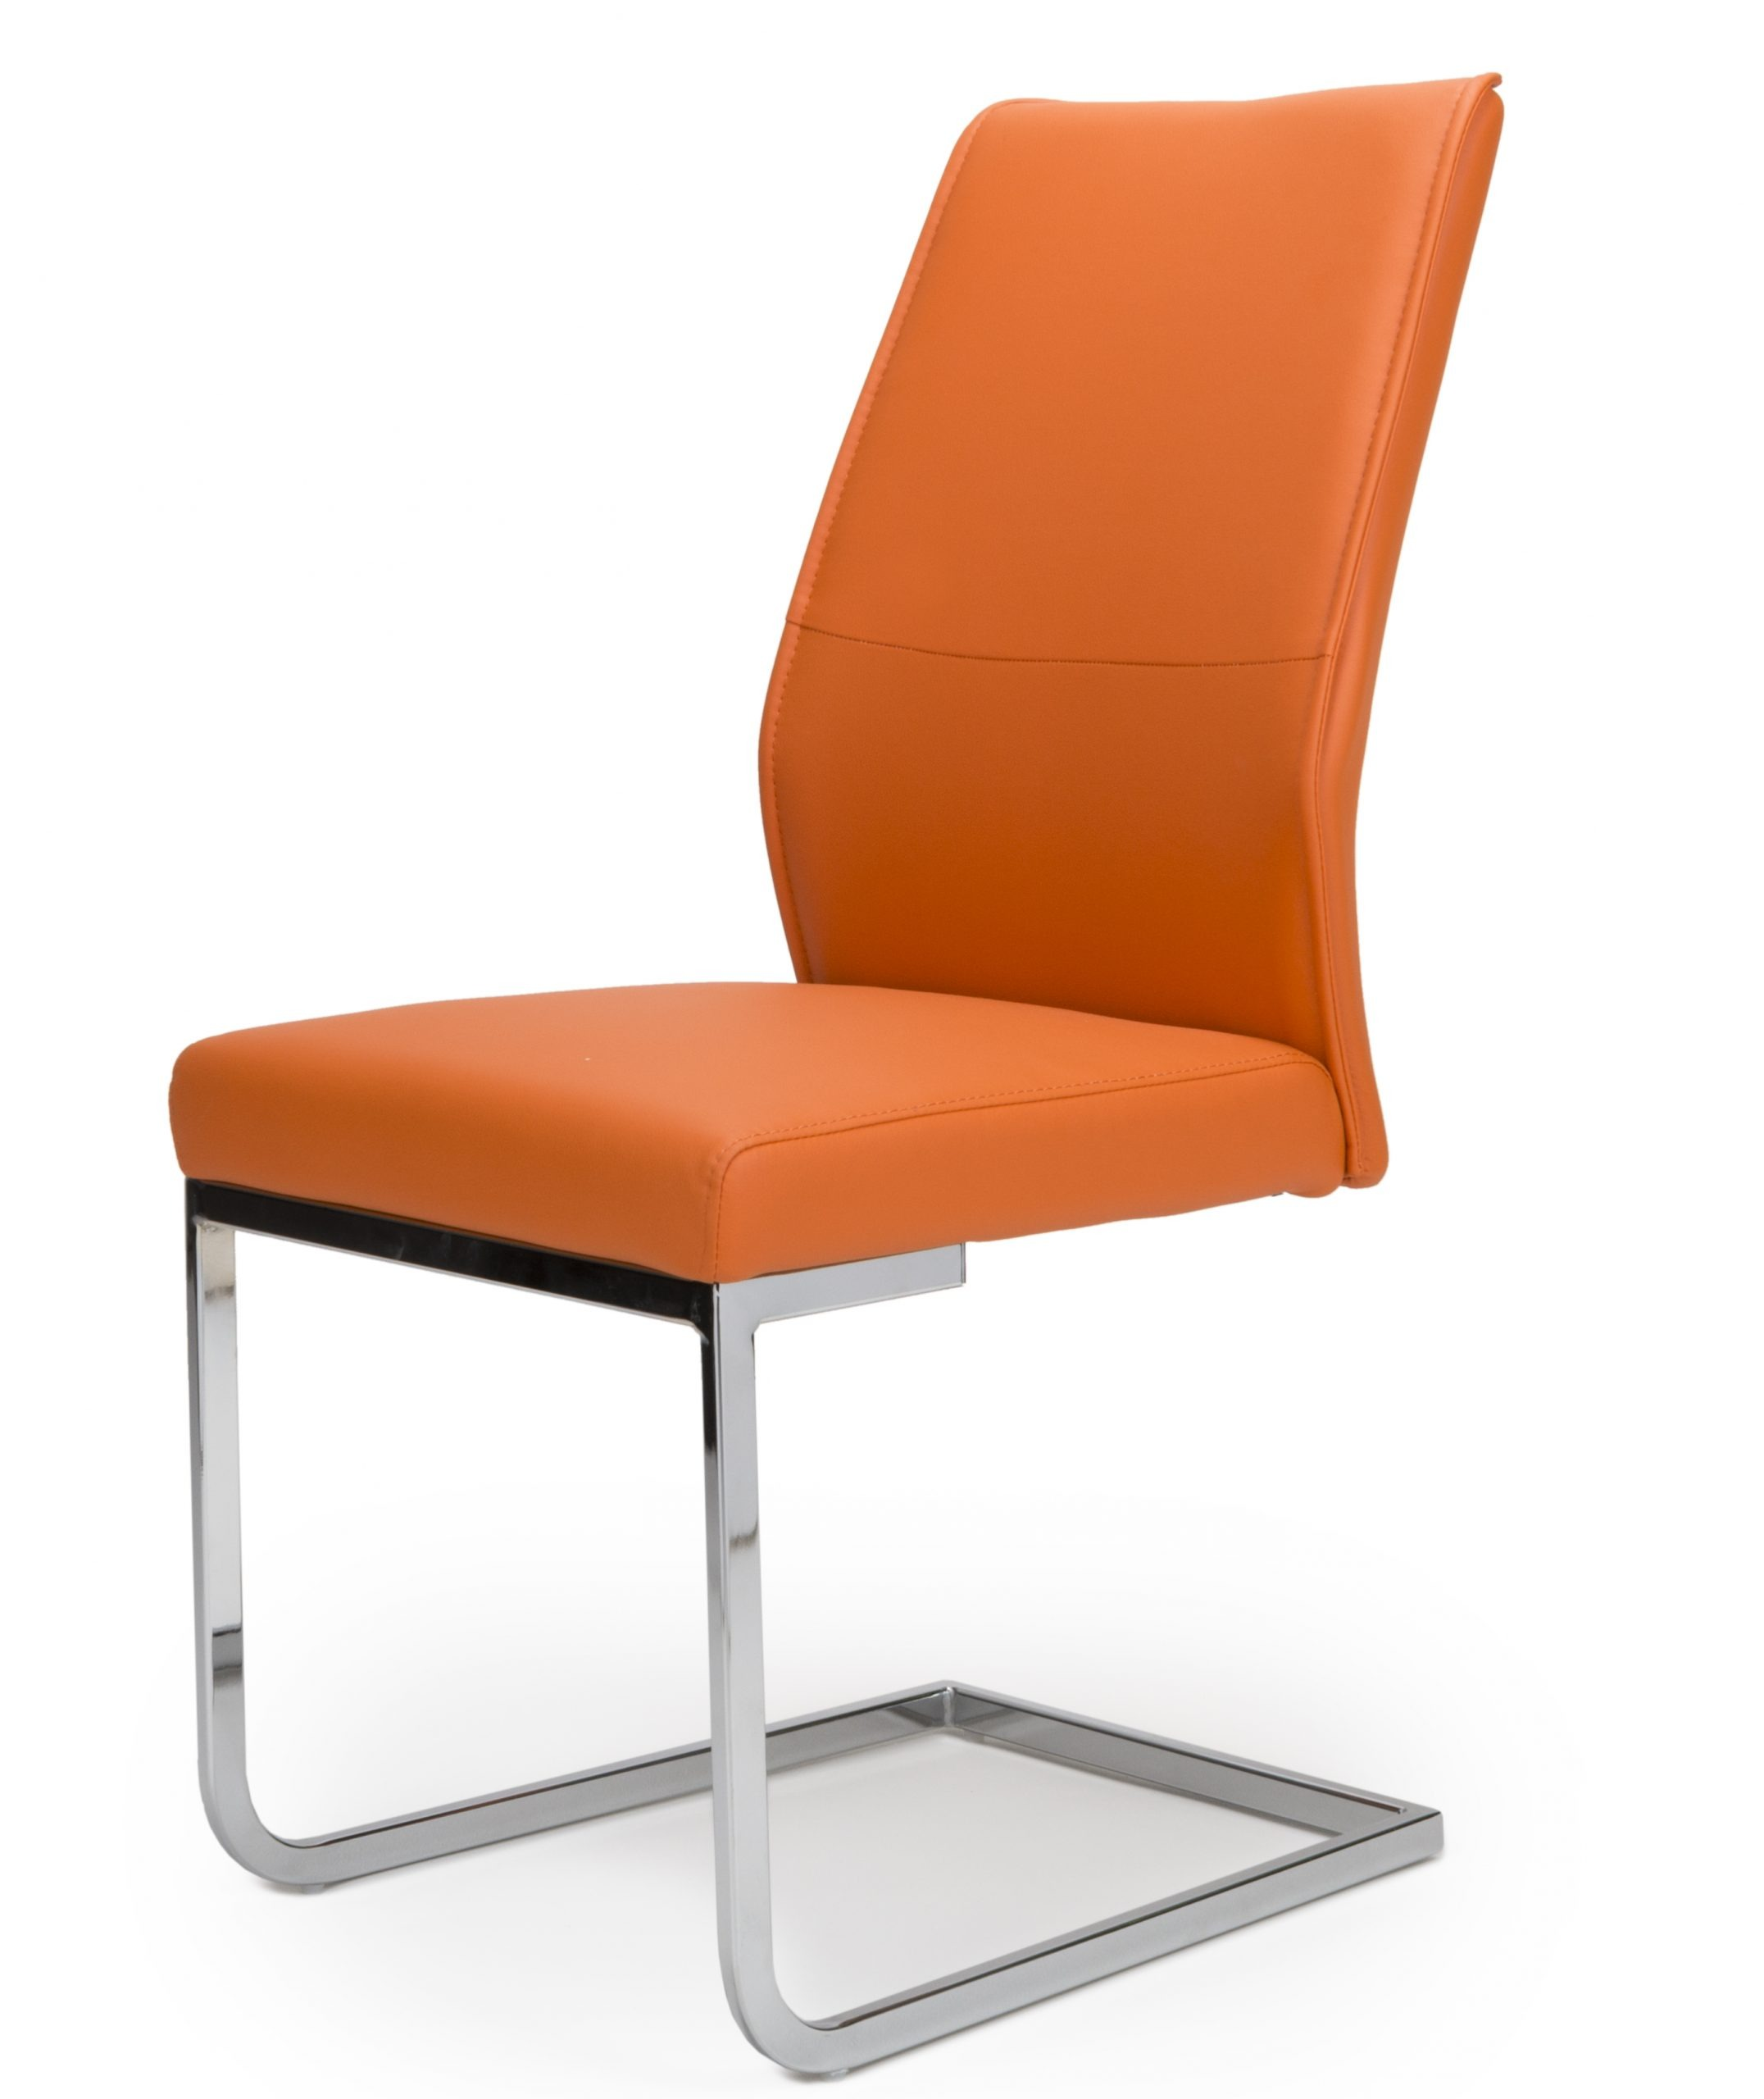 Seattle Orange Leather cantilever dining chair